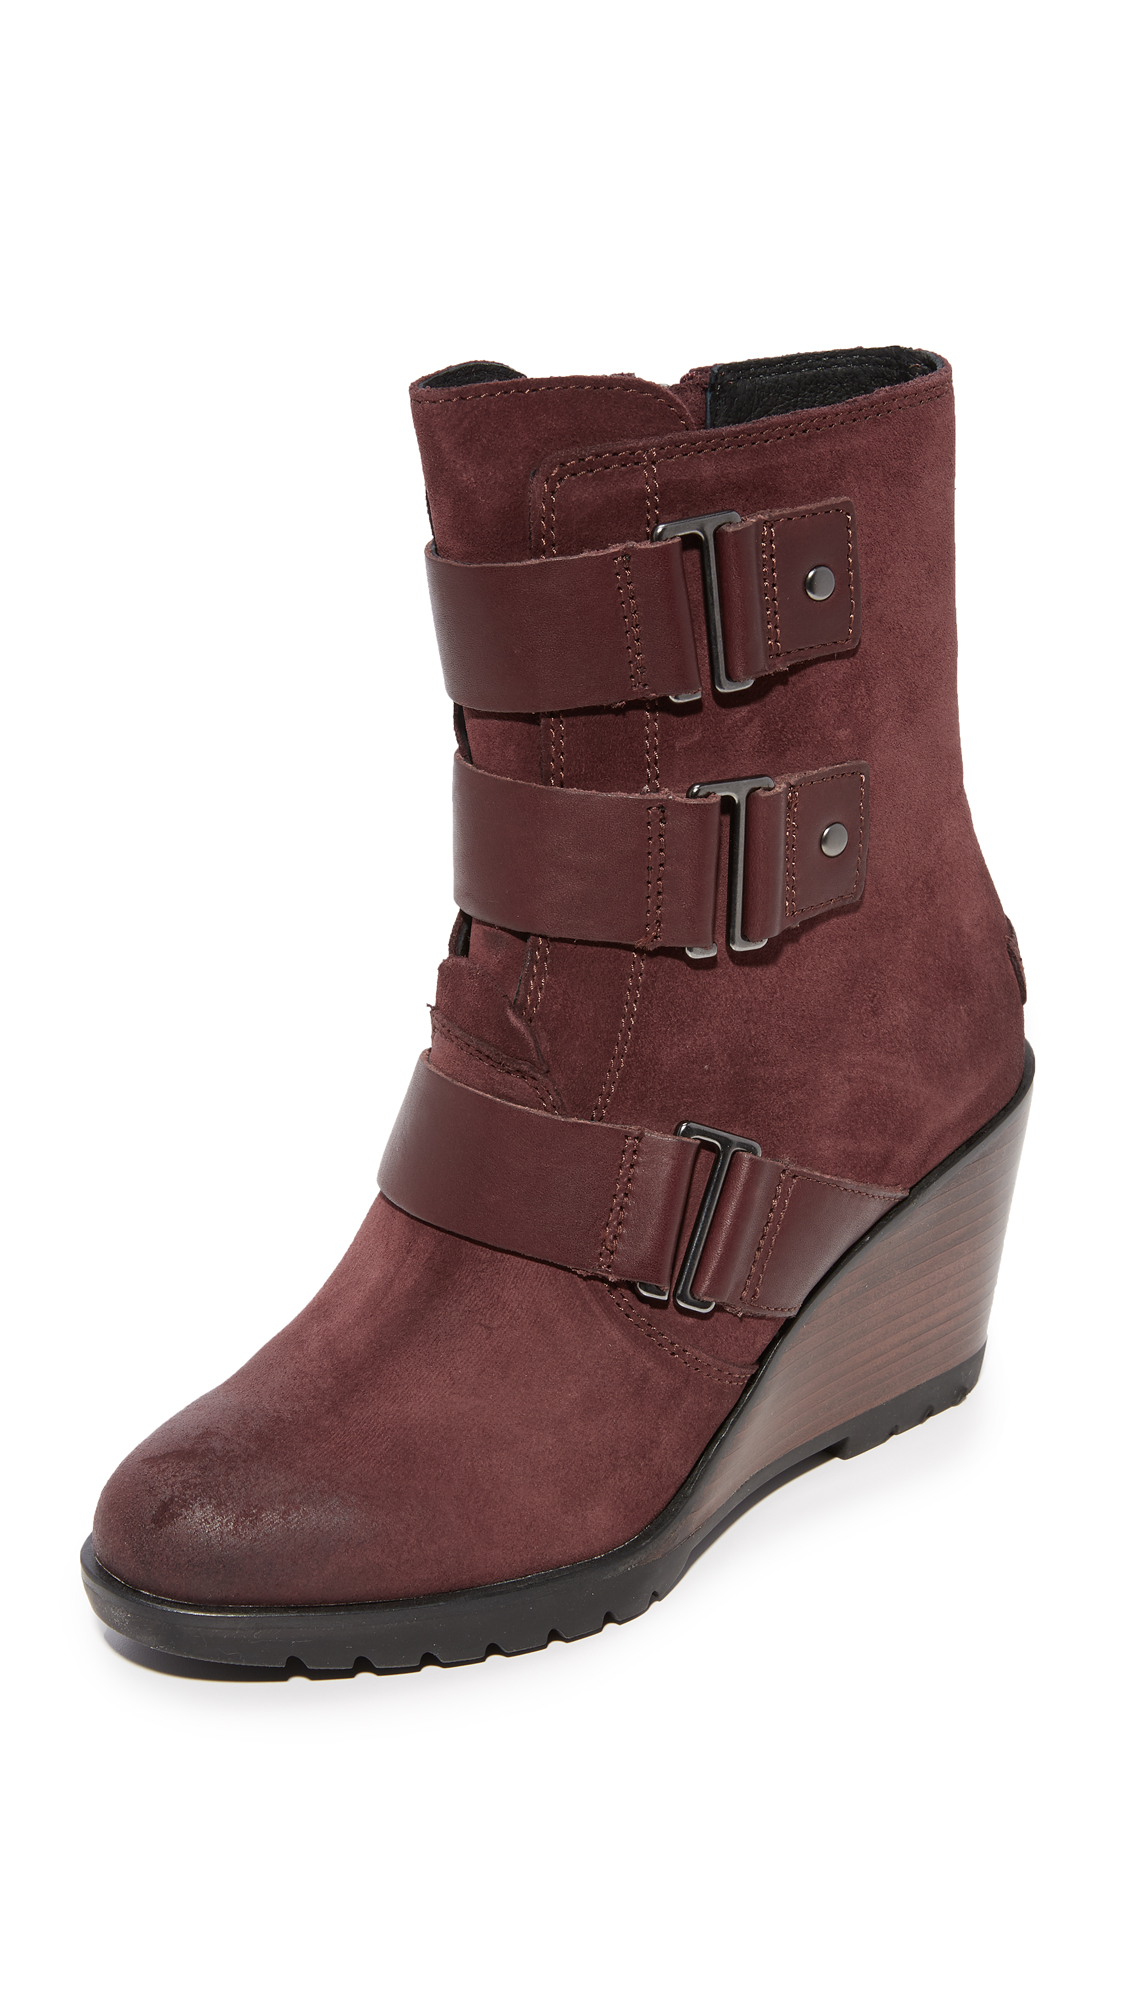 Sorel After Hours Booties - Redwood